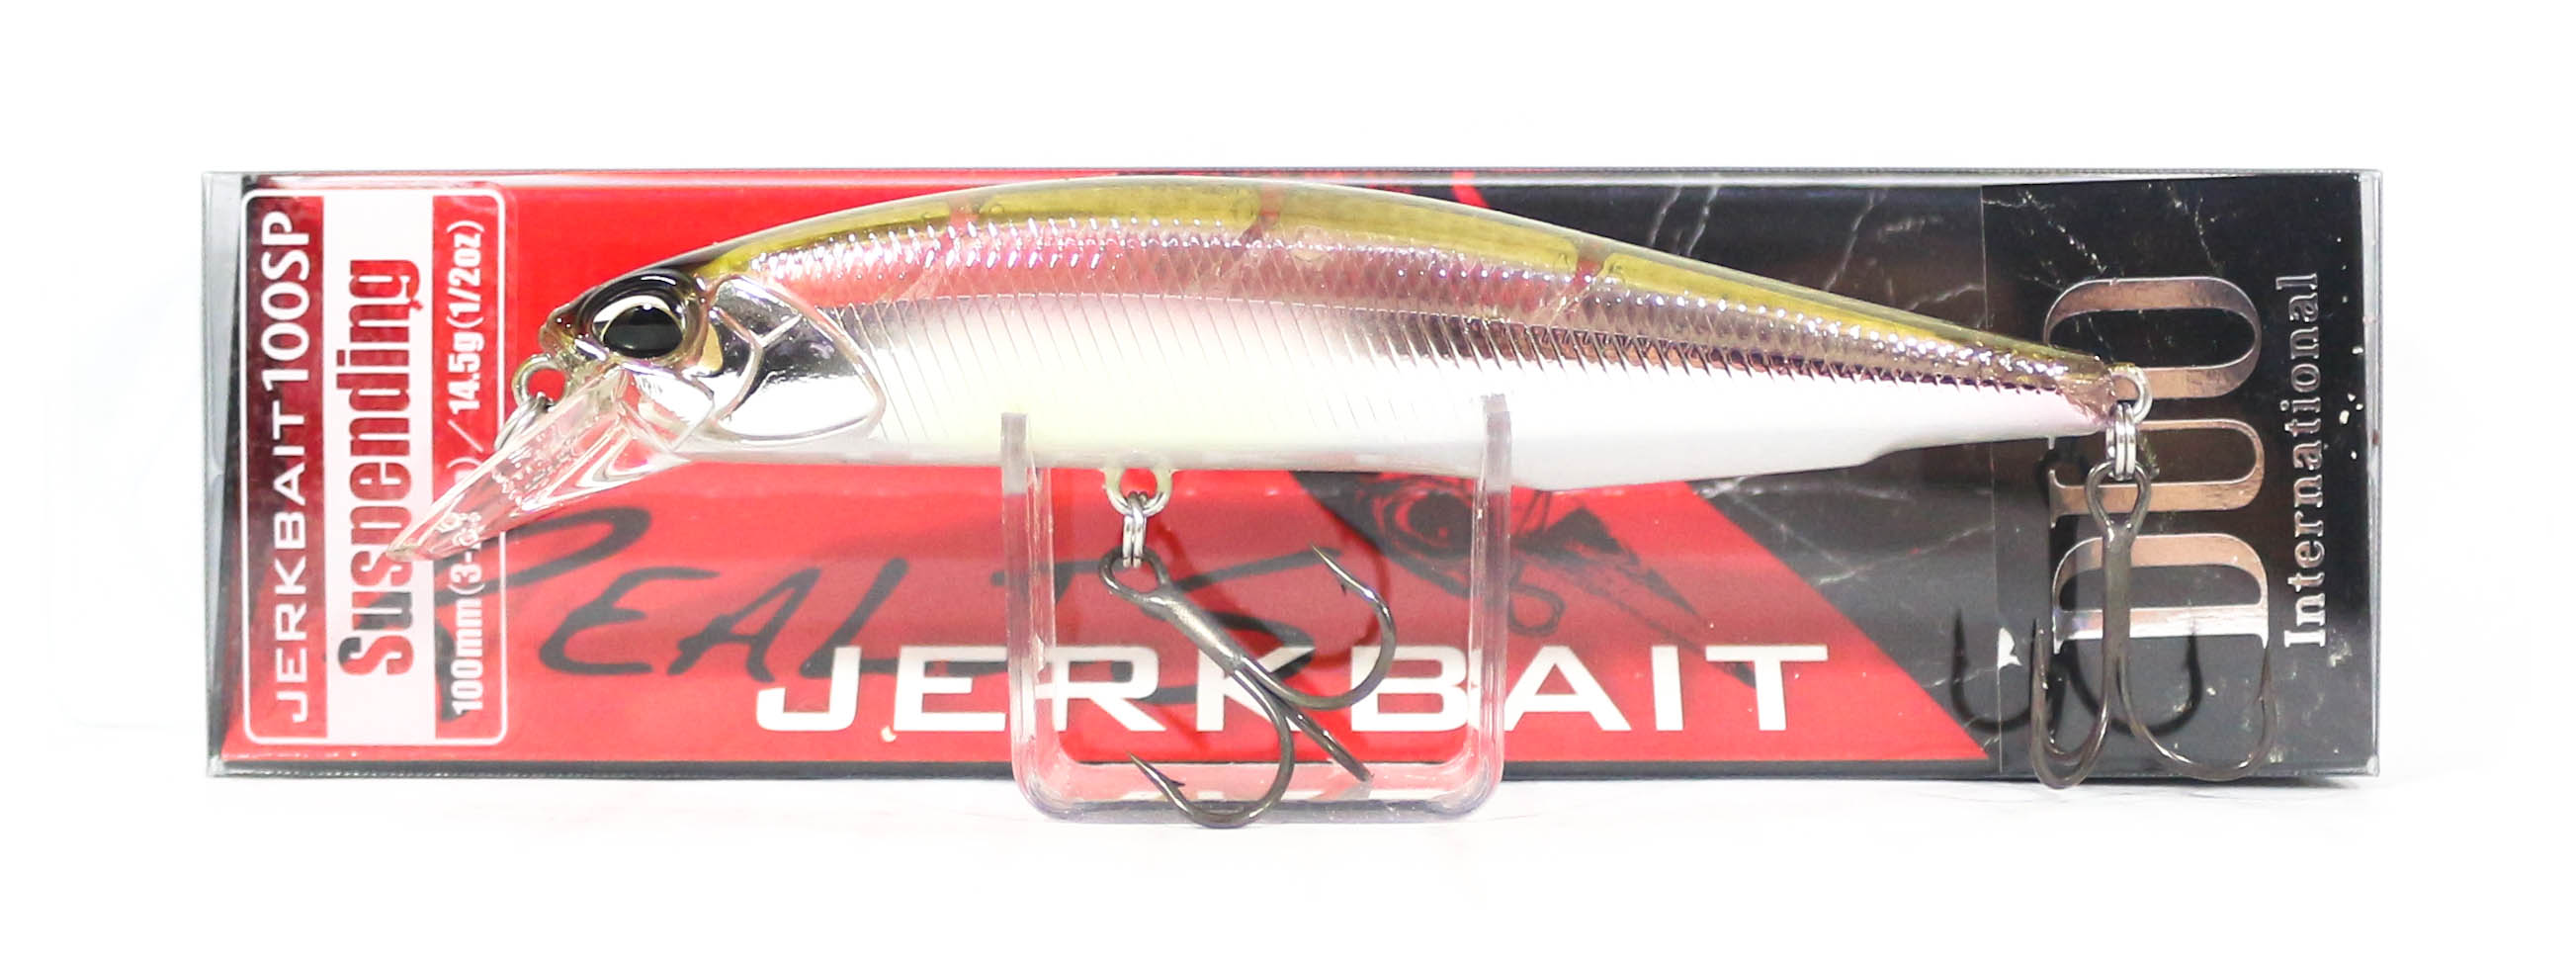 Duo Realis Jerkbait 100SP Suspend Lure DSH3061 (6674)